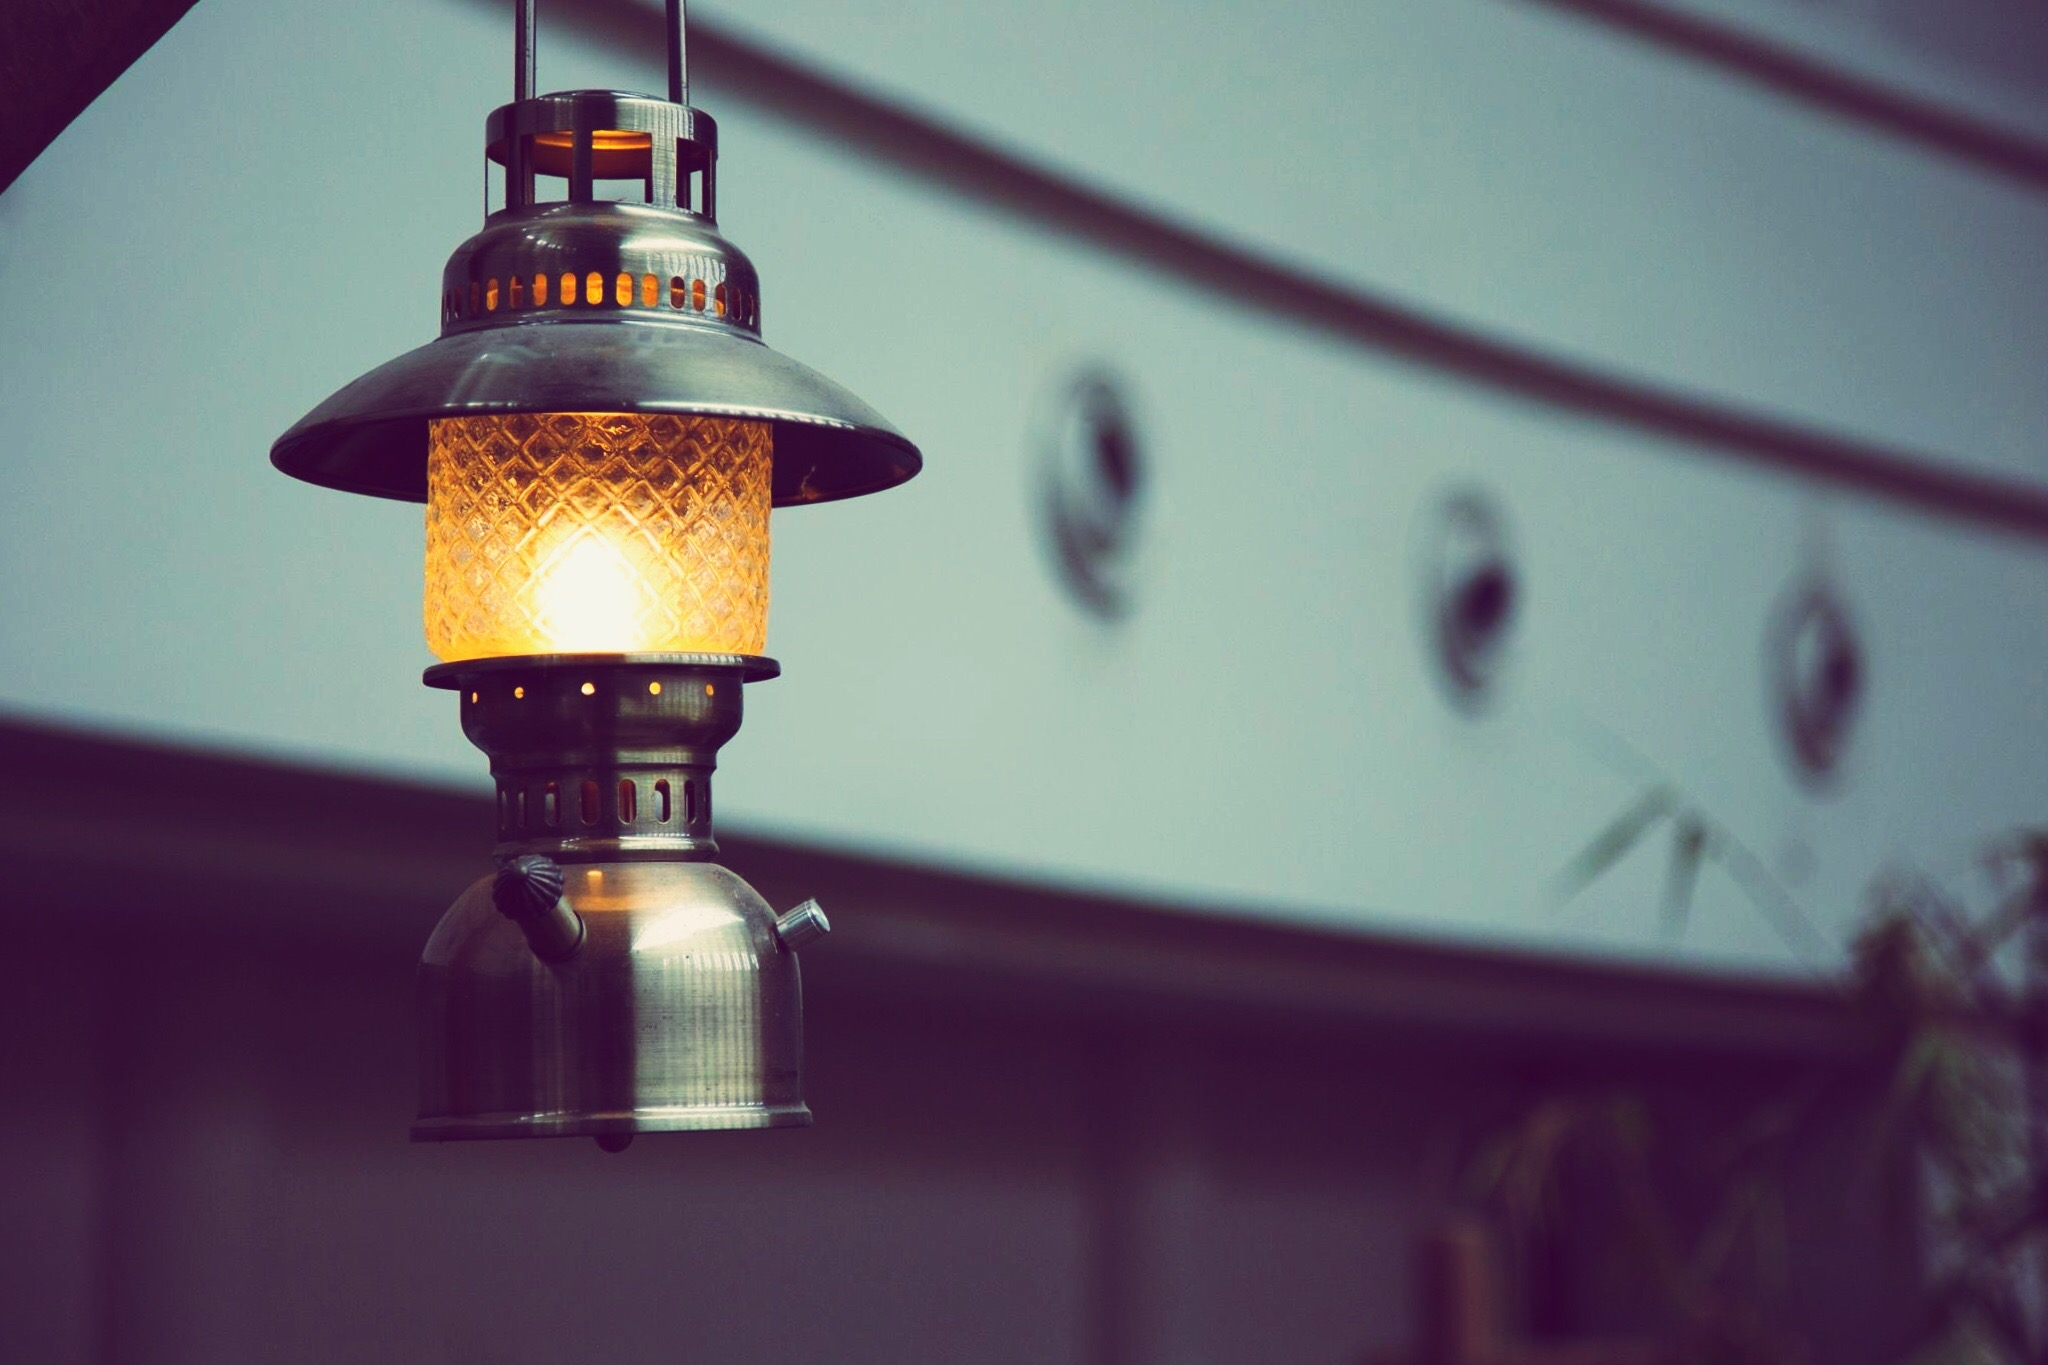 What Kind of Oil Do You Put in Lamps & Lanterns? | Home